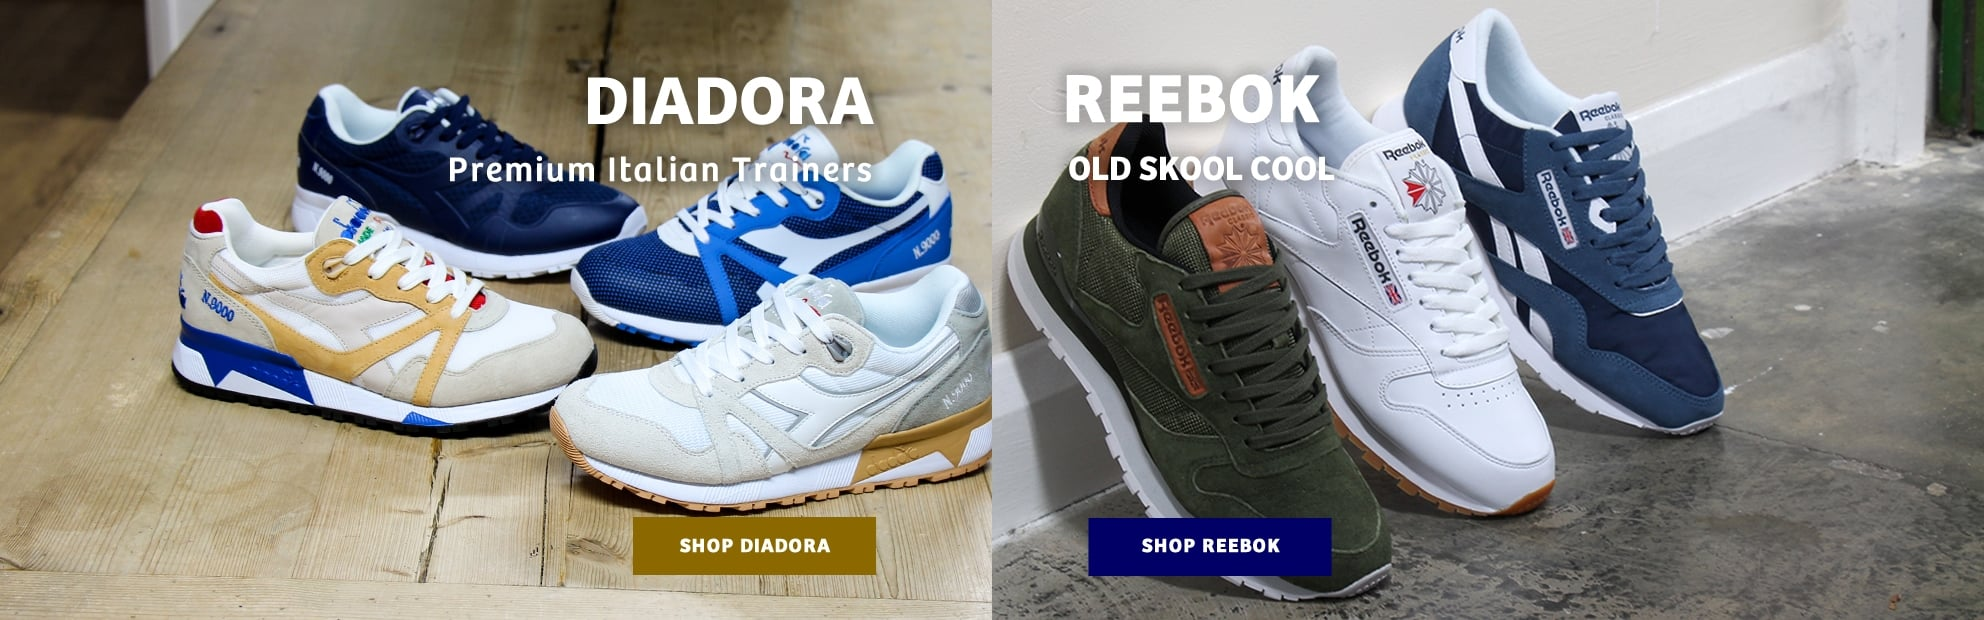 Diadora and Reebok